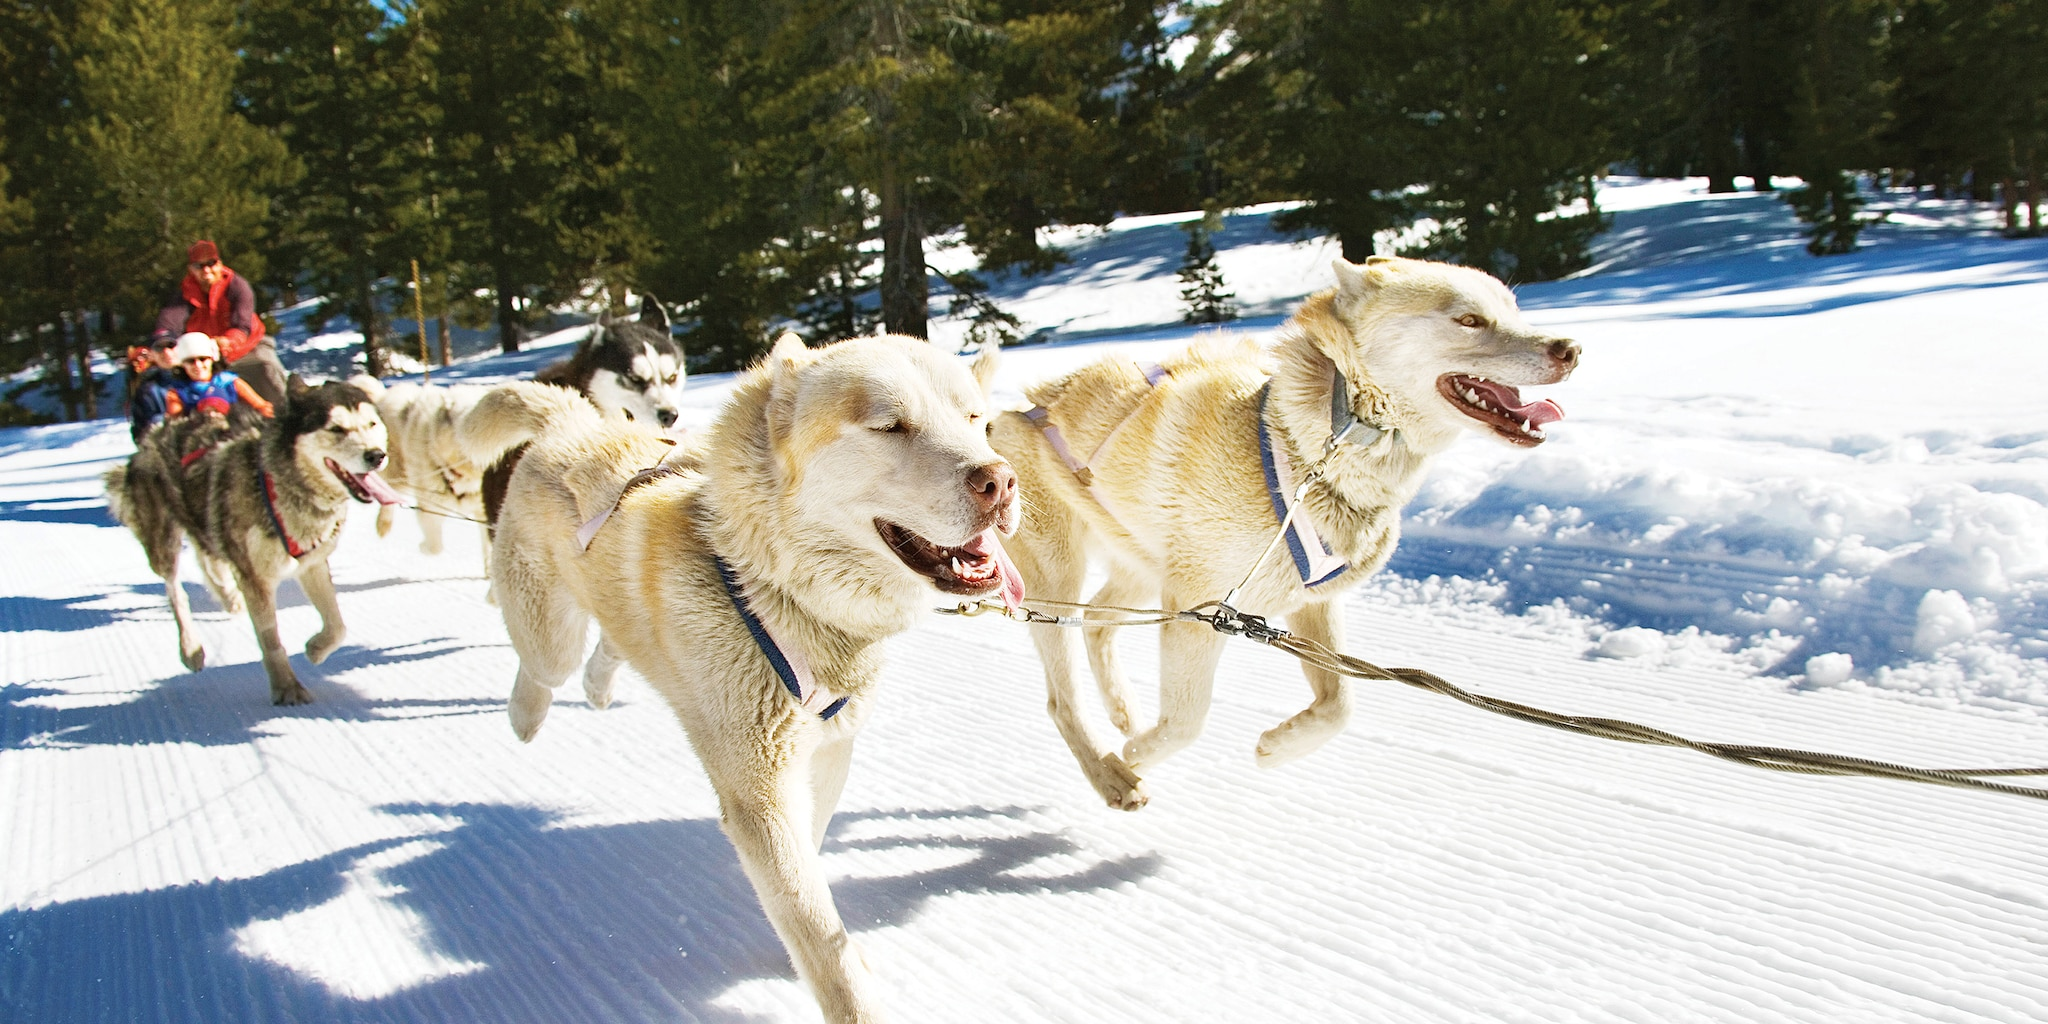 Several people take the Iditarod Sled Dog Tour